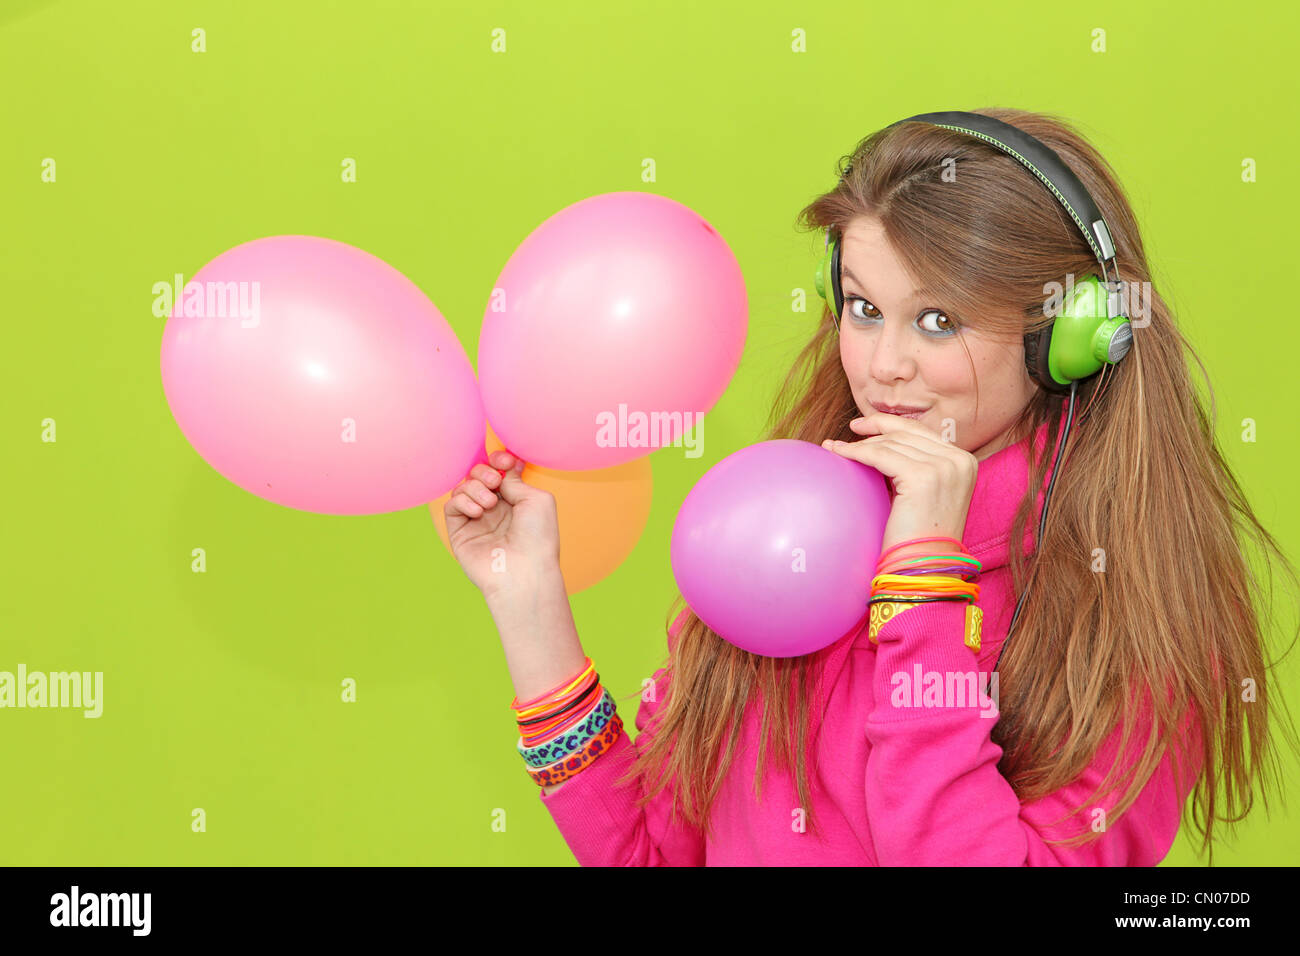 happy girl blowing up balloons at party - Stock Image